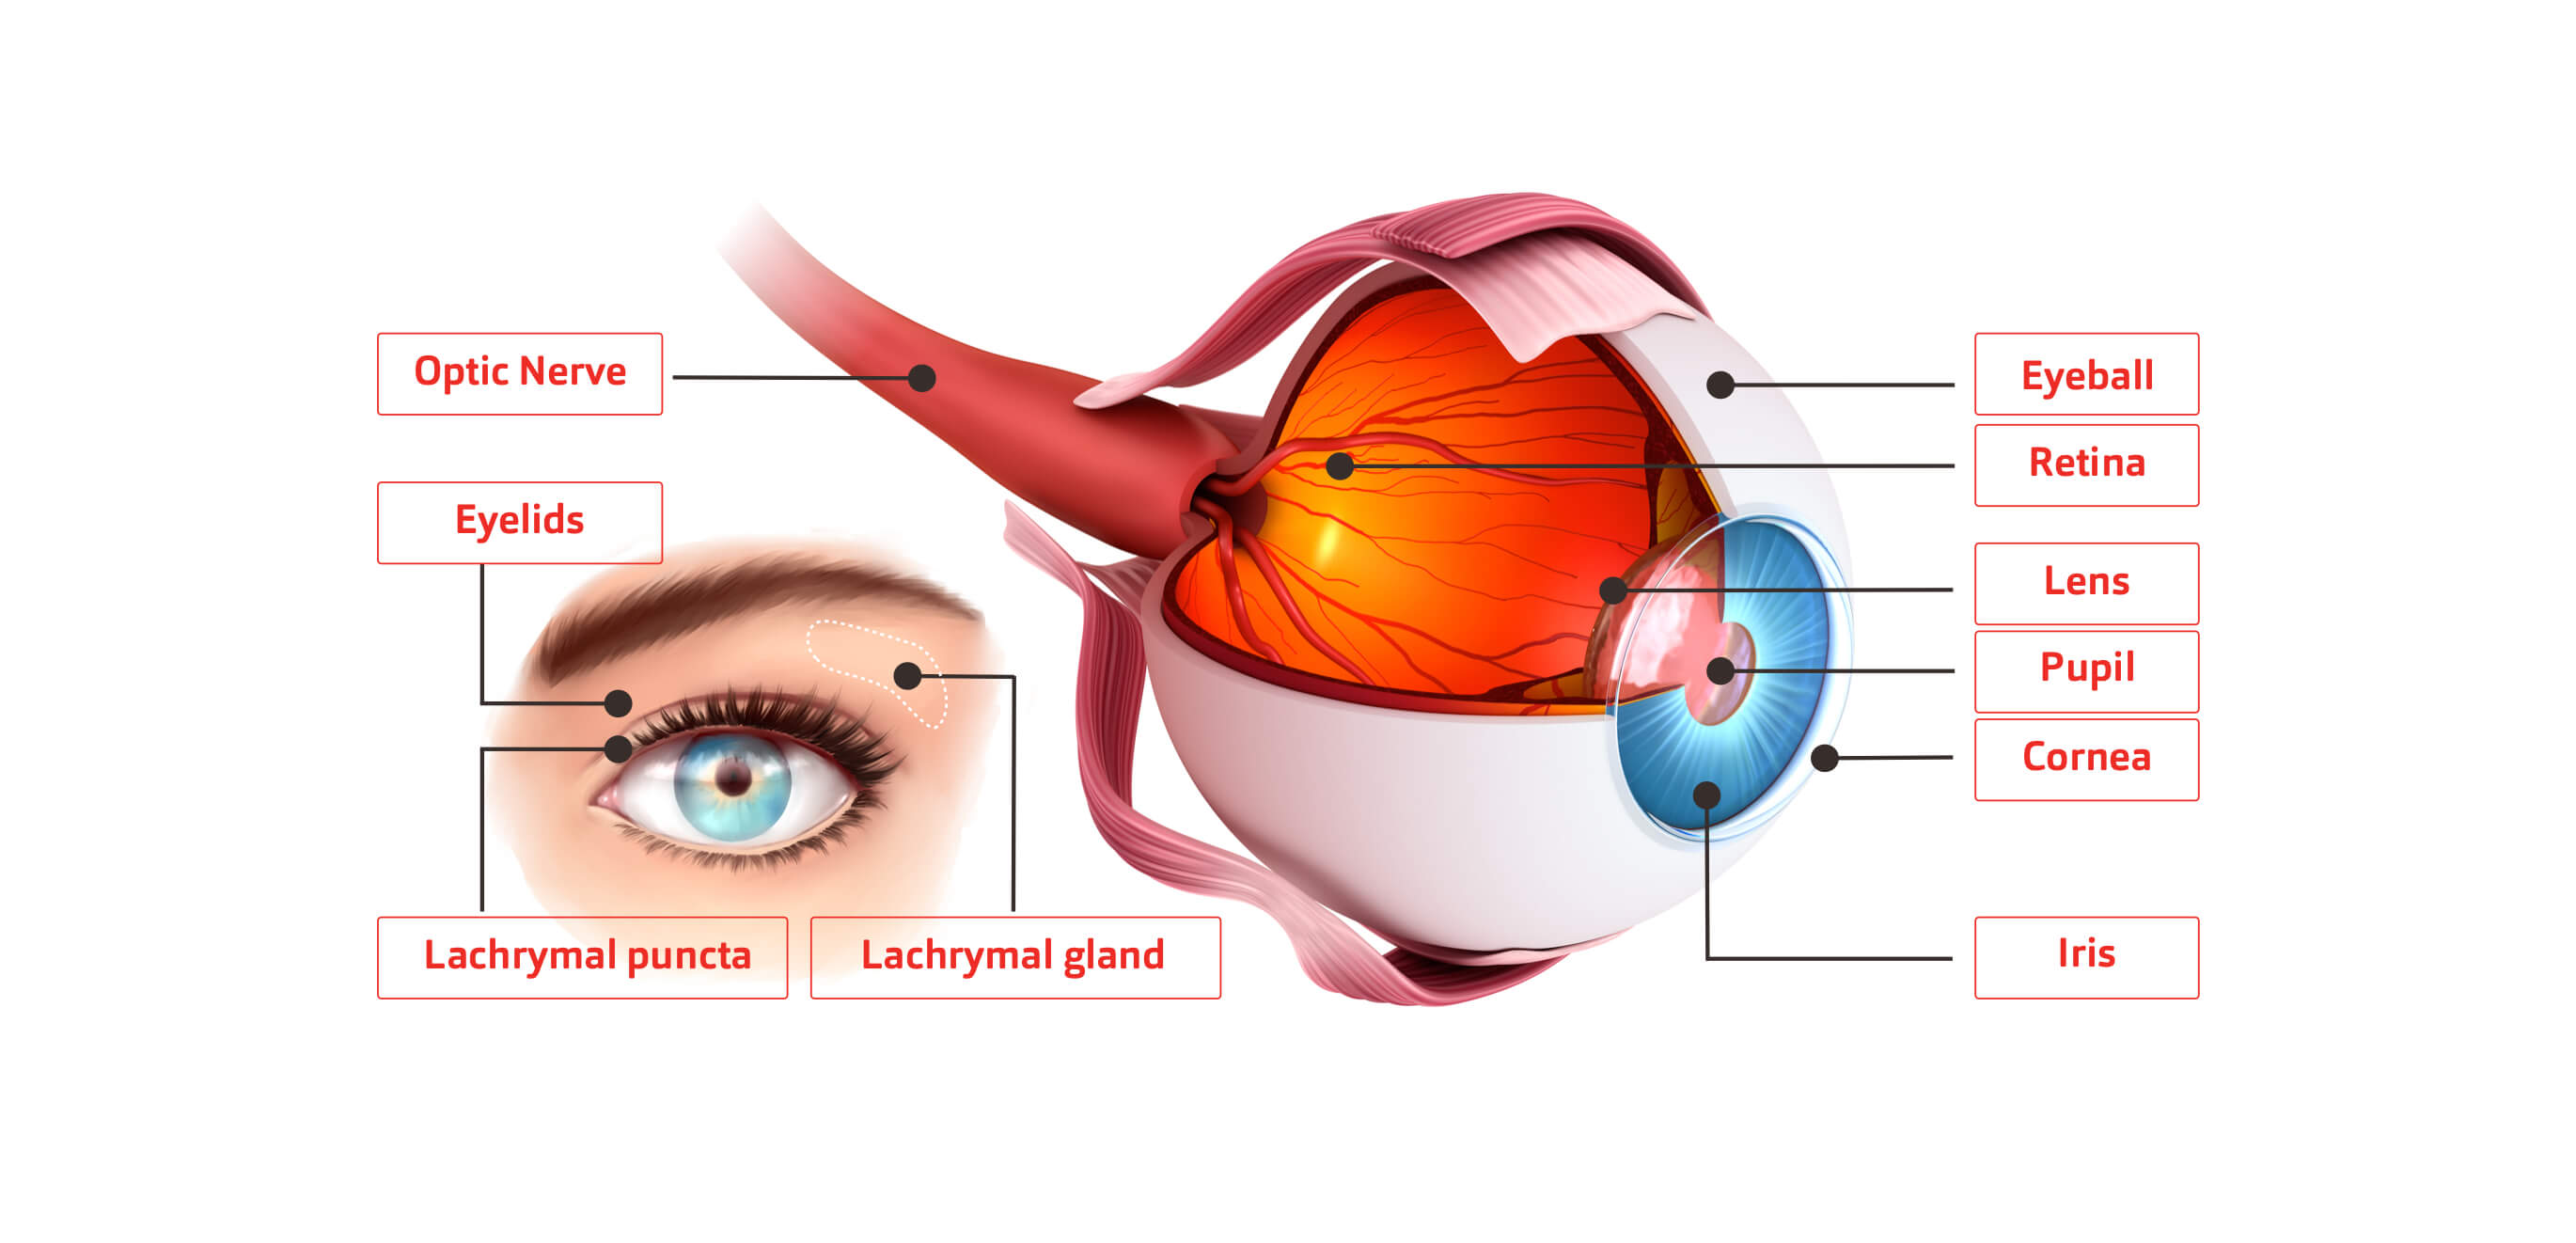 A cross section diagram of an eye